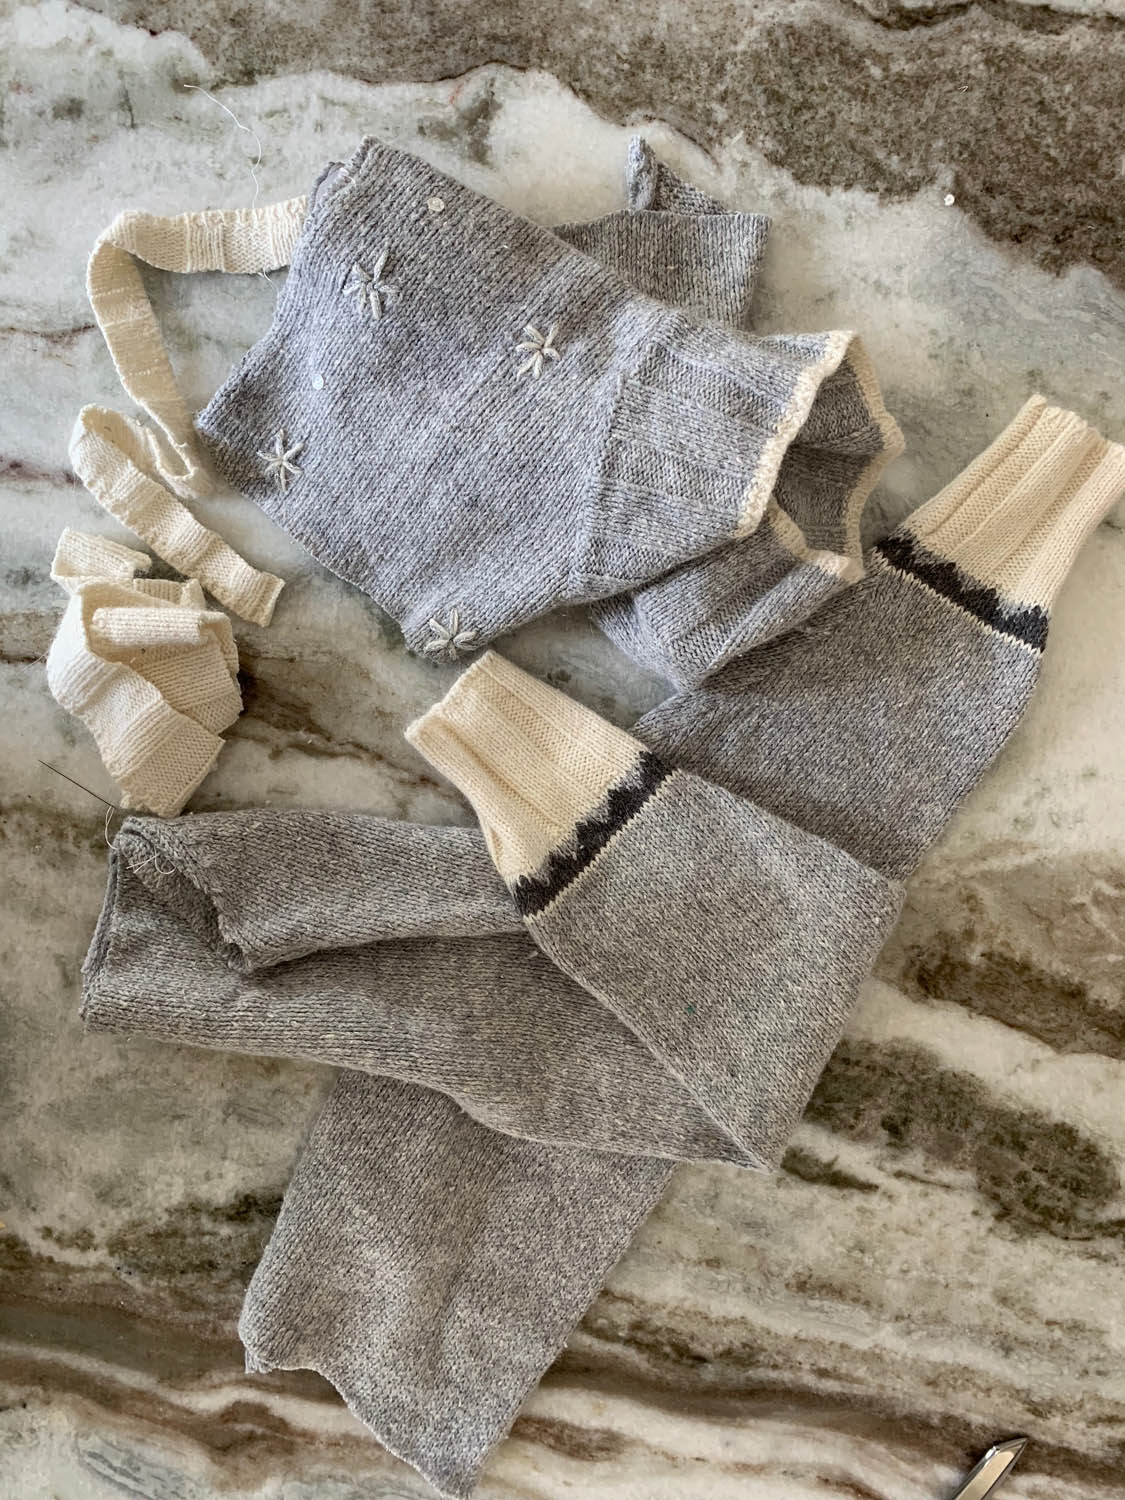 Leftover scraps from thrift store sweater after cutting out front and back for holiday pillow.